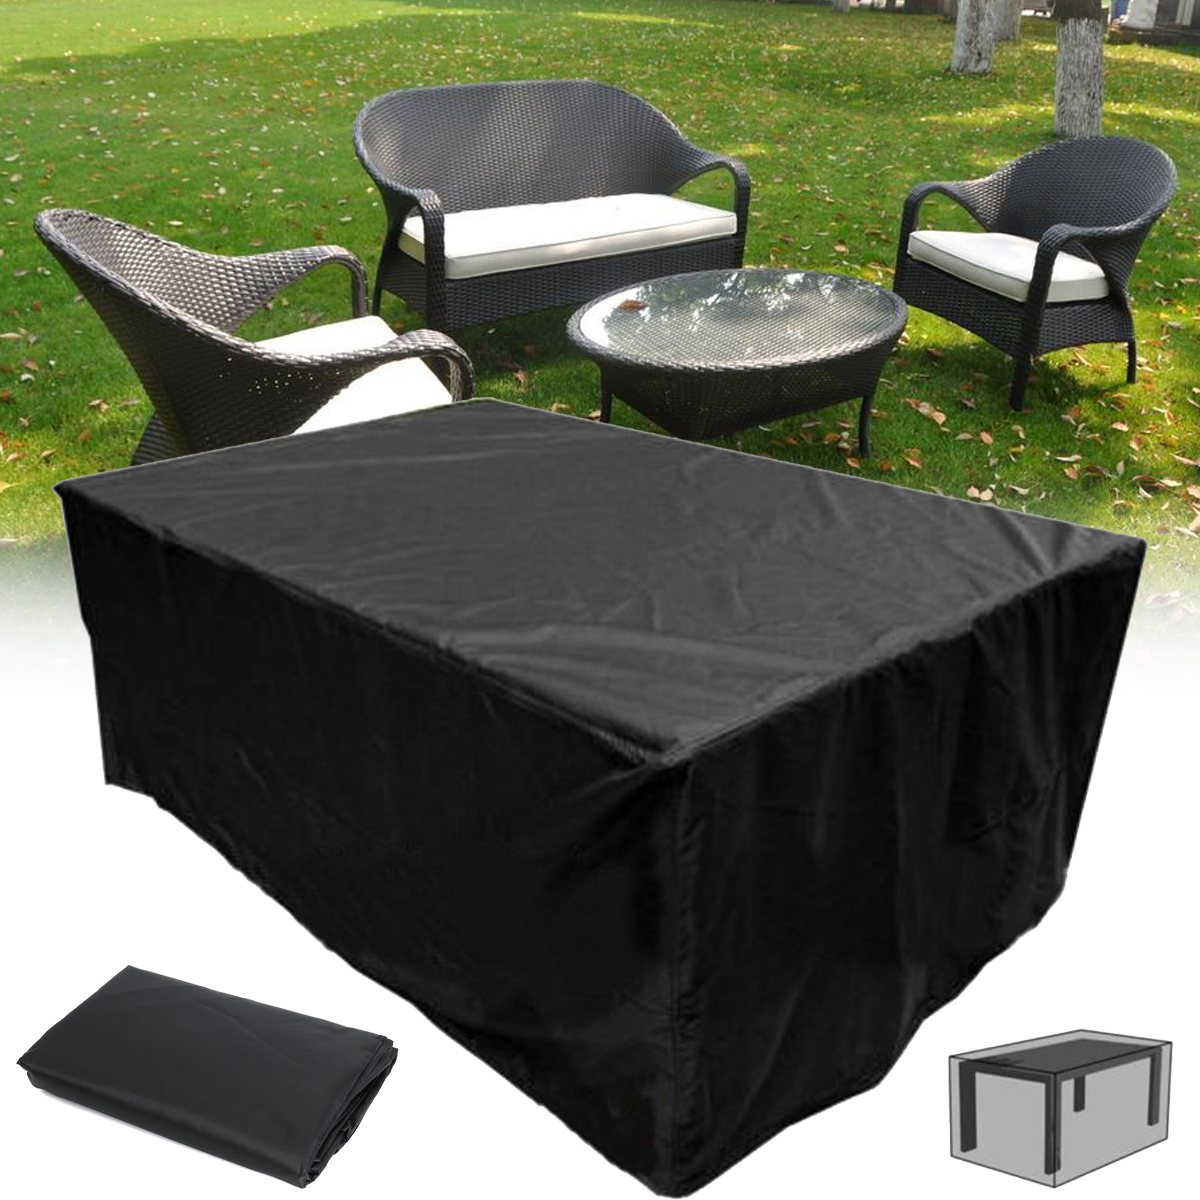 New Black Outdoor Garden Patio Furniture Covers Shelter Sun Protection Cover Canopy Dustproof Cloth Table Protect Bag Textiles 1